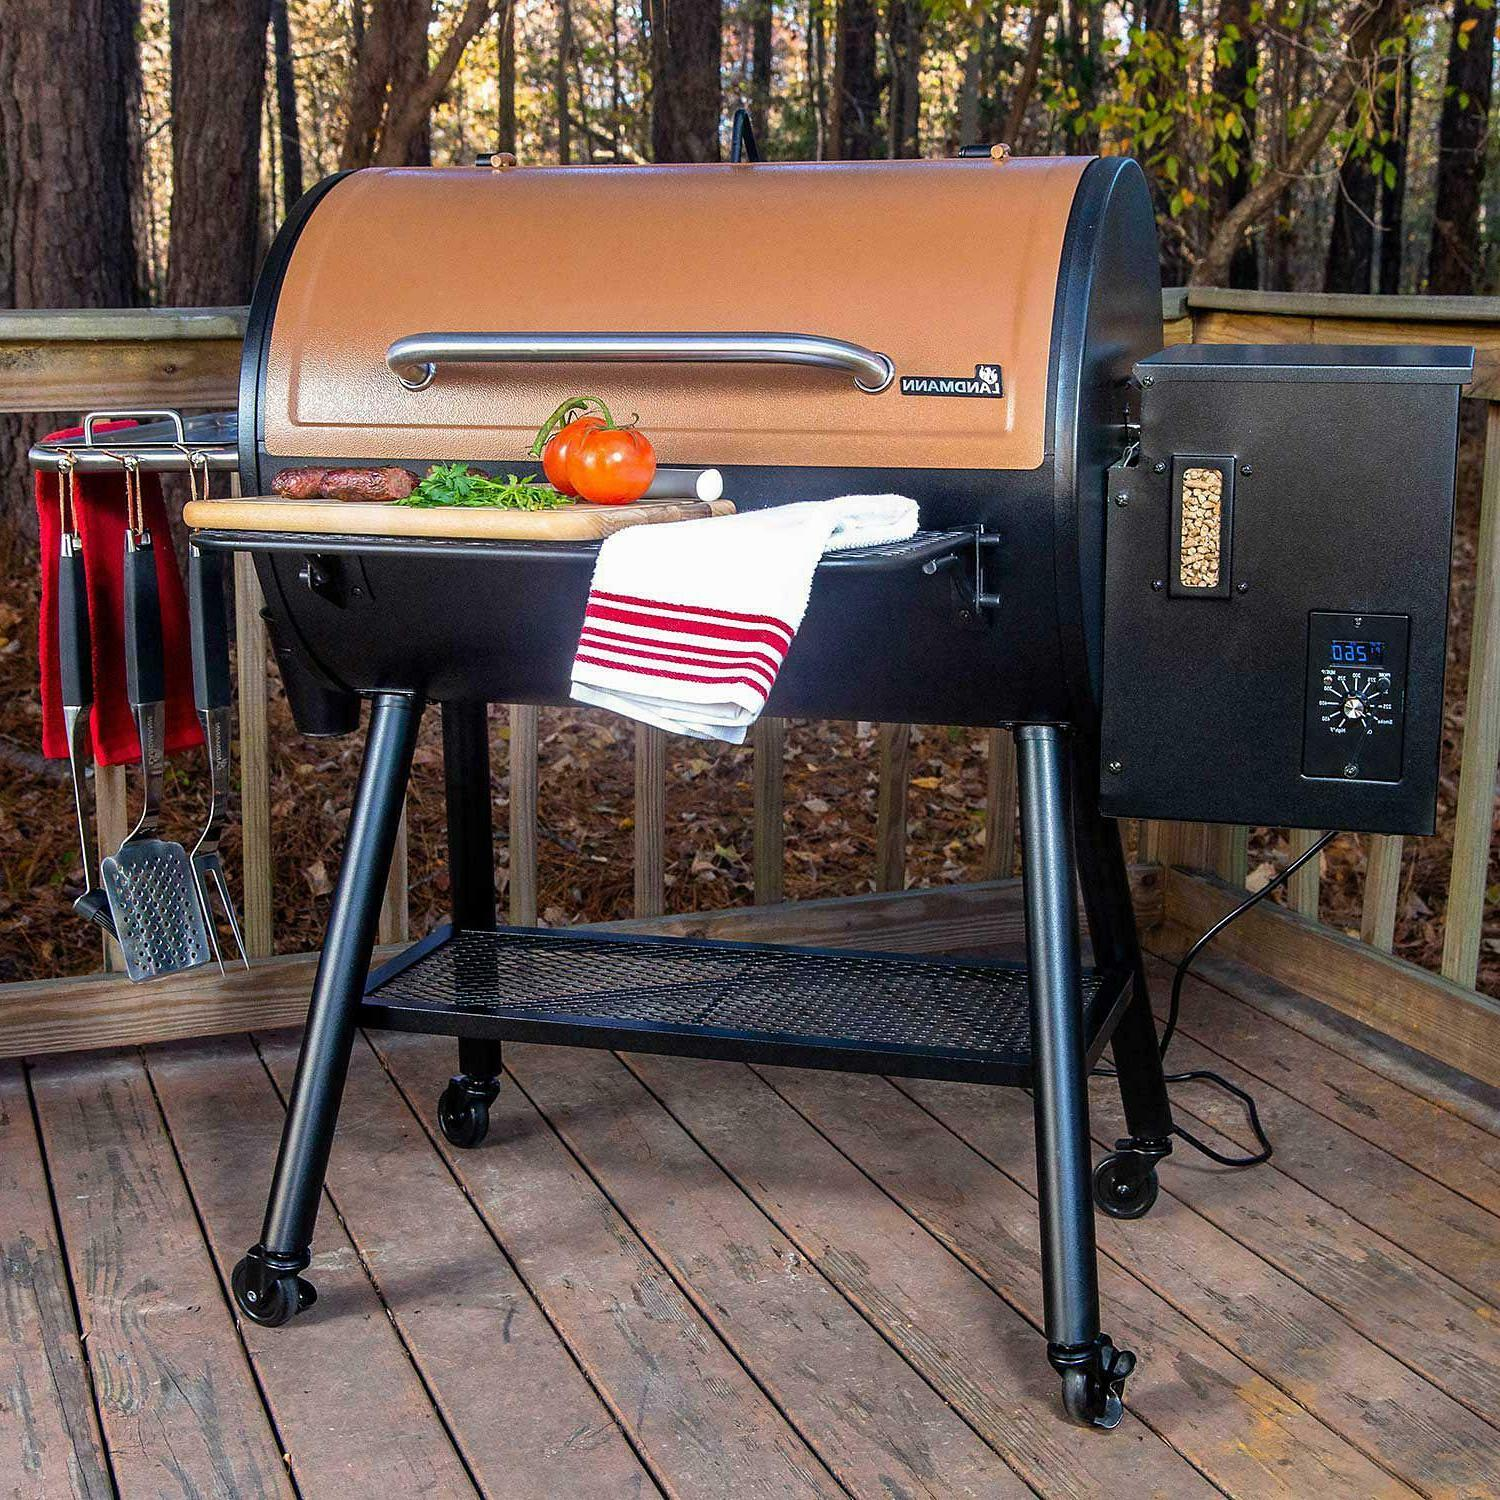 Barrel Pellet Grill 1318 total square Inch cooking area, Coo